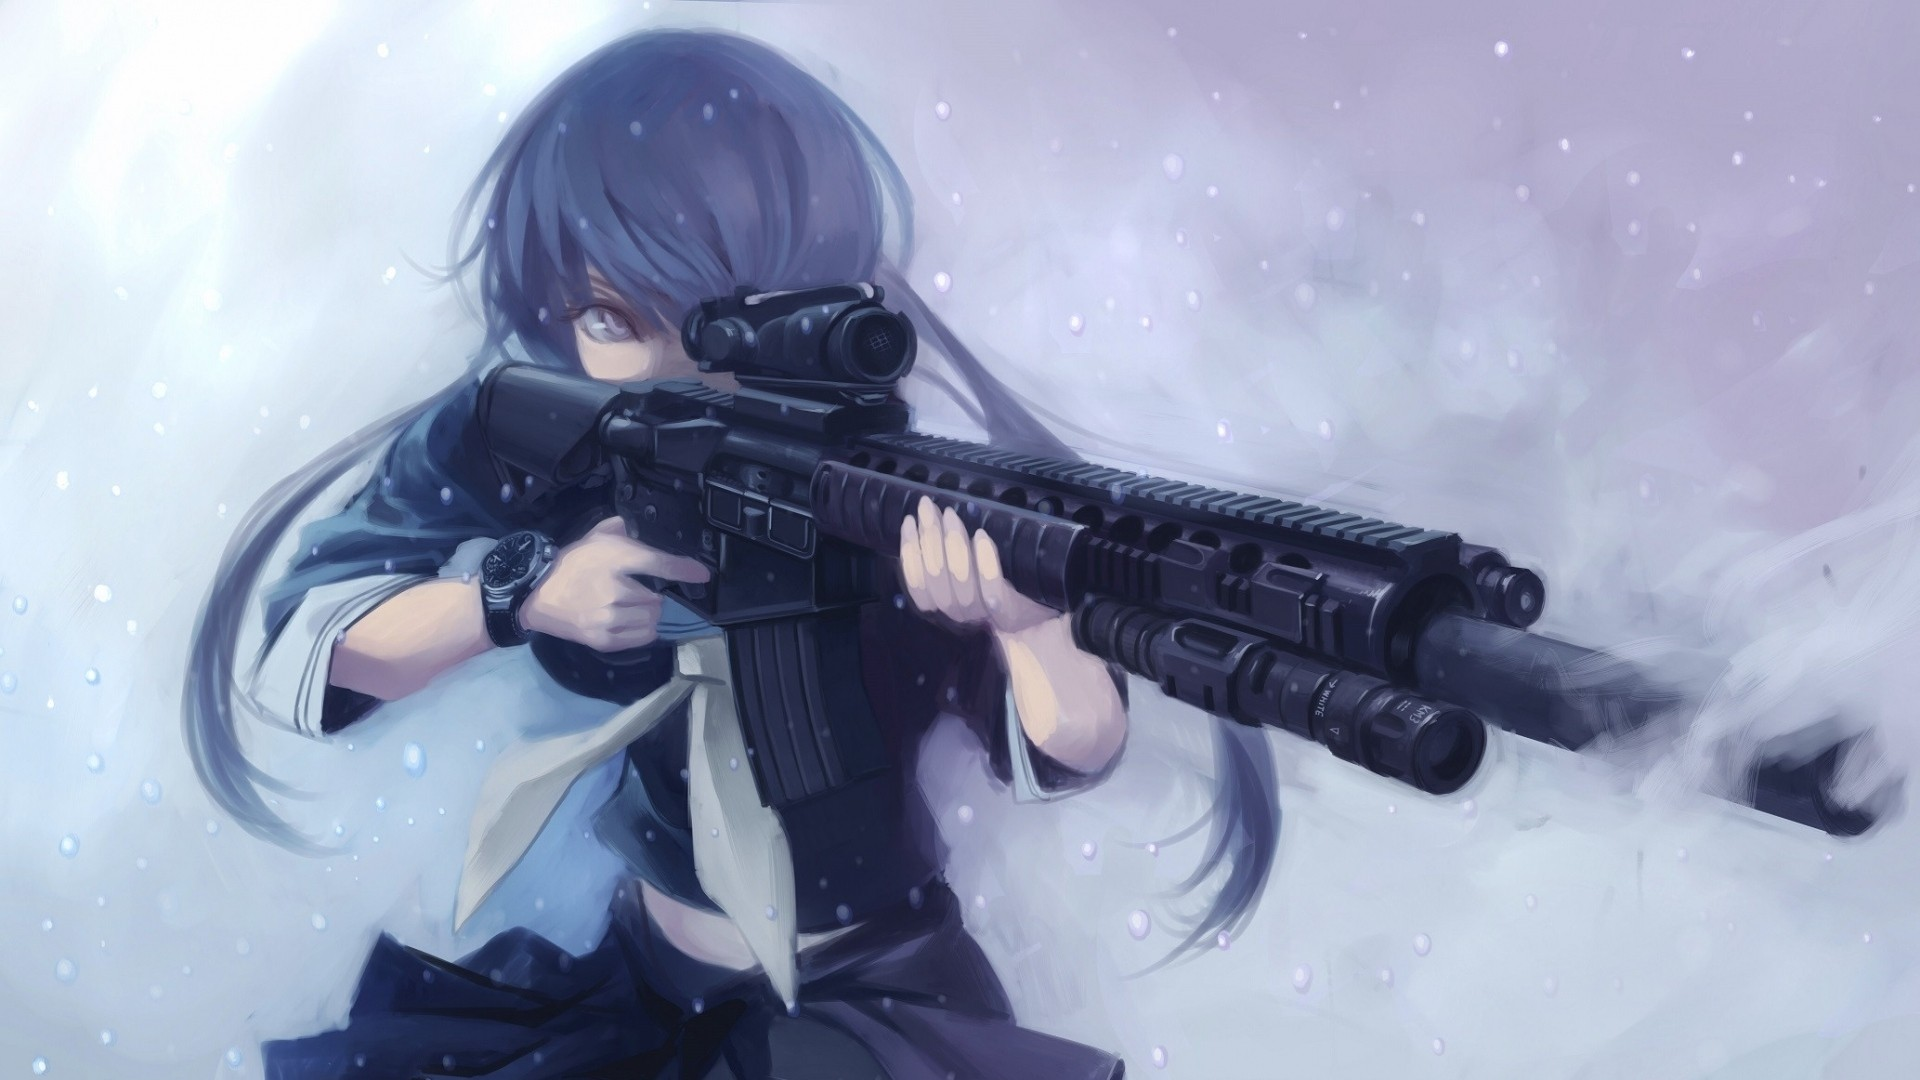 Anime Girls With Guns Wallpaper Free Download